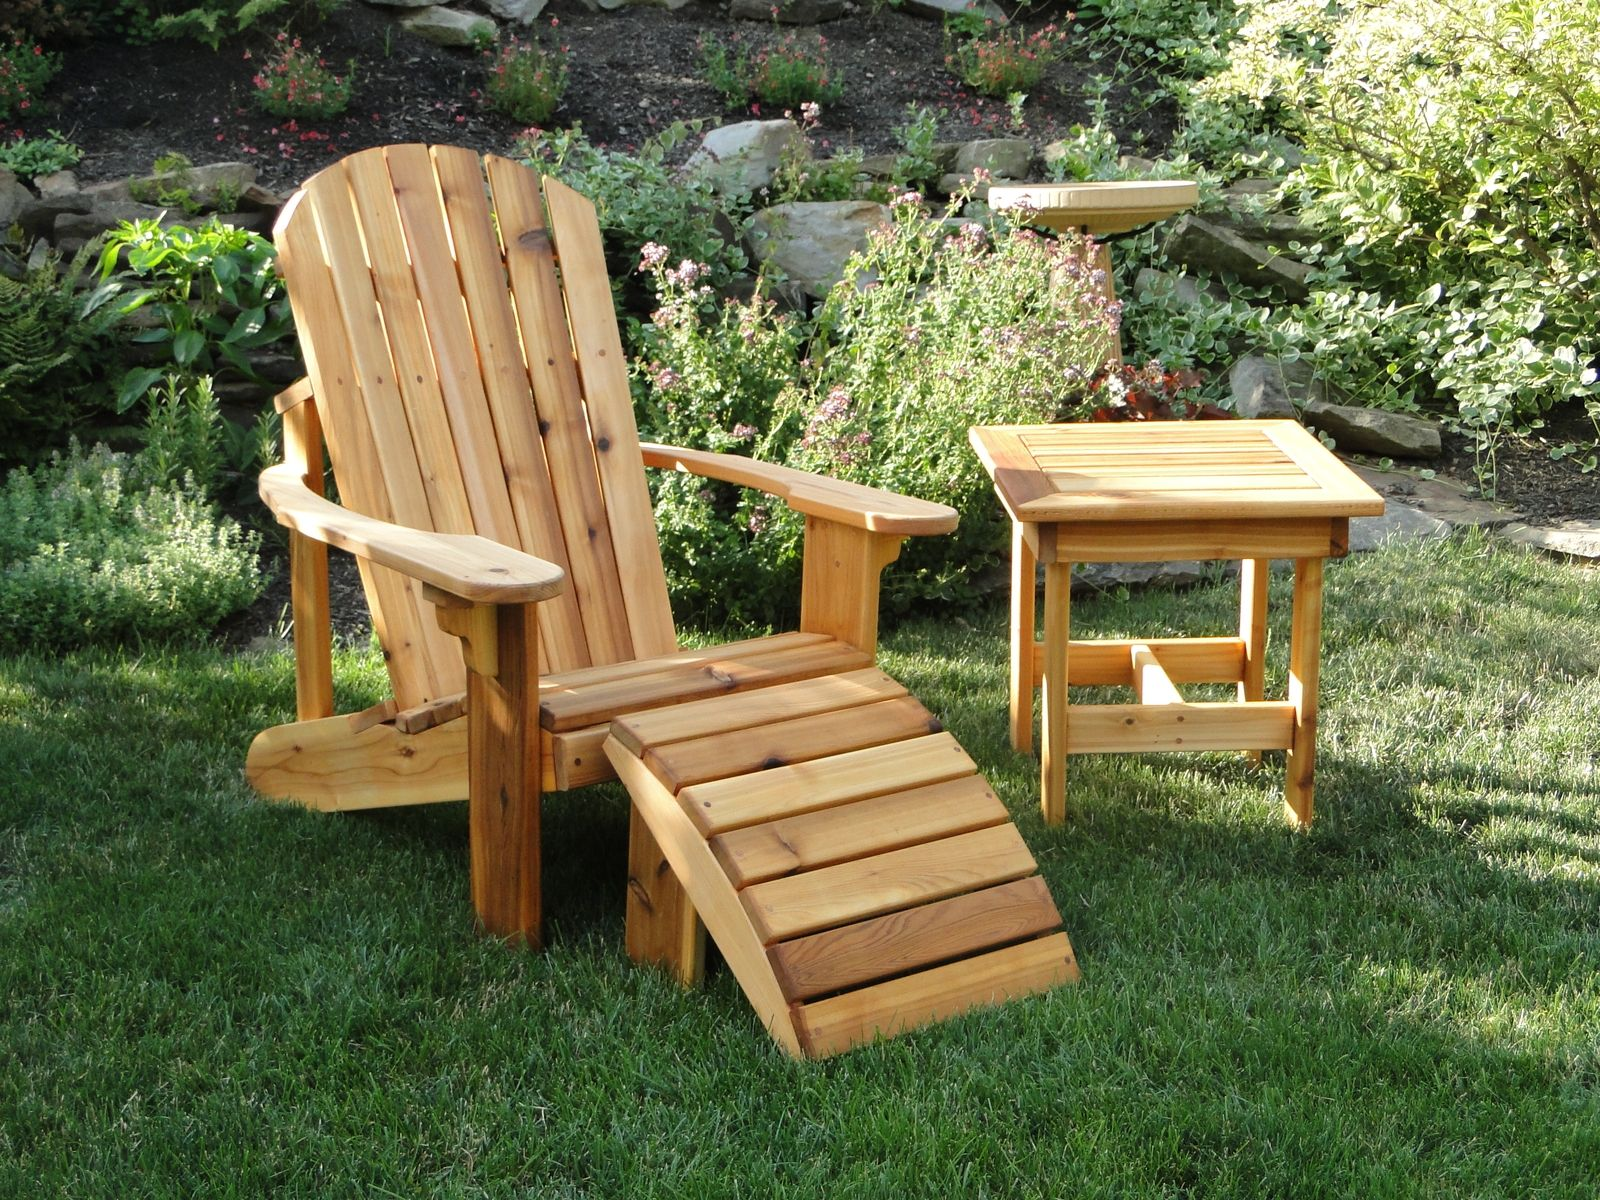 Adirondack Chair With Leg Rest And Side Table Adirondack Chair Plans Adirondack Chair Adirondak Chairs